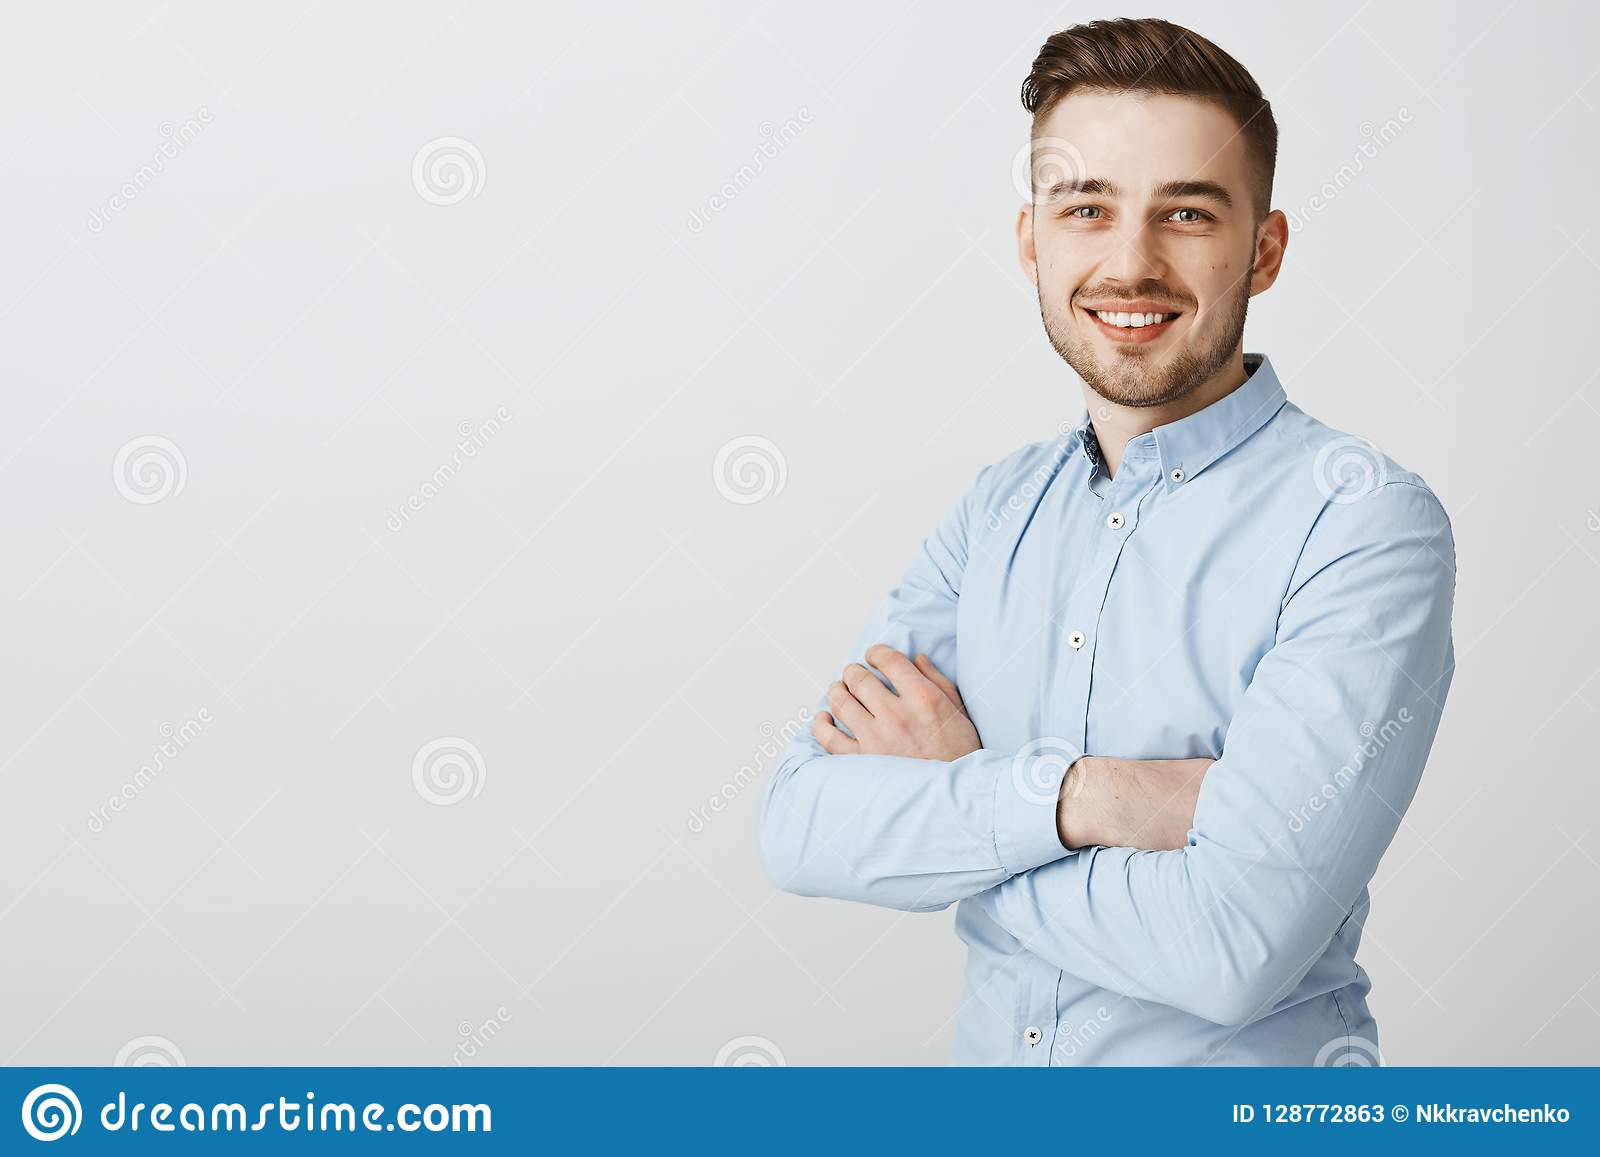 a20292dfa17 Ambitious smart and creative handsome young male with bristle and stylish  hairstyle in blue collar shirt